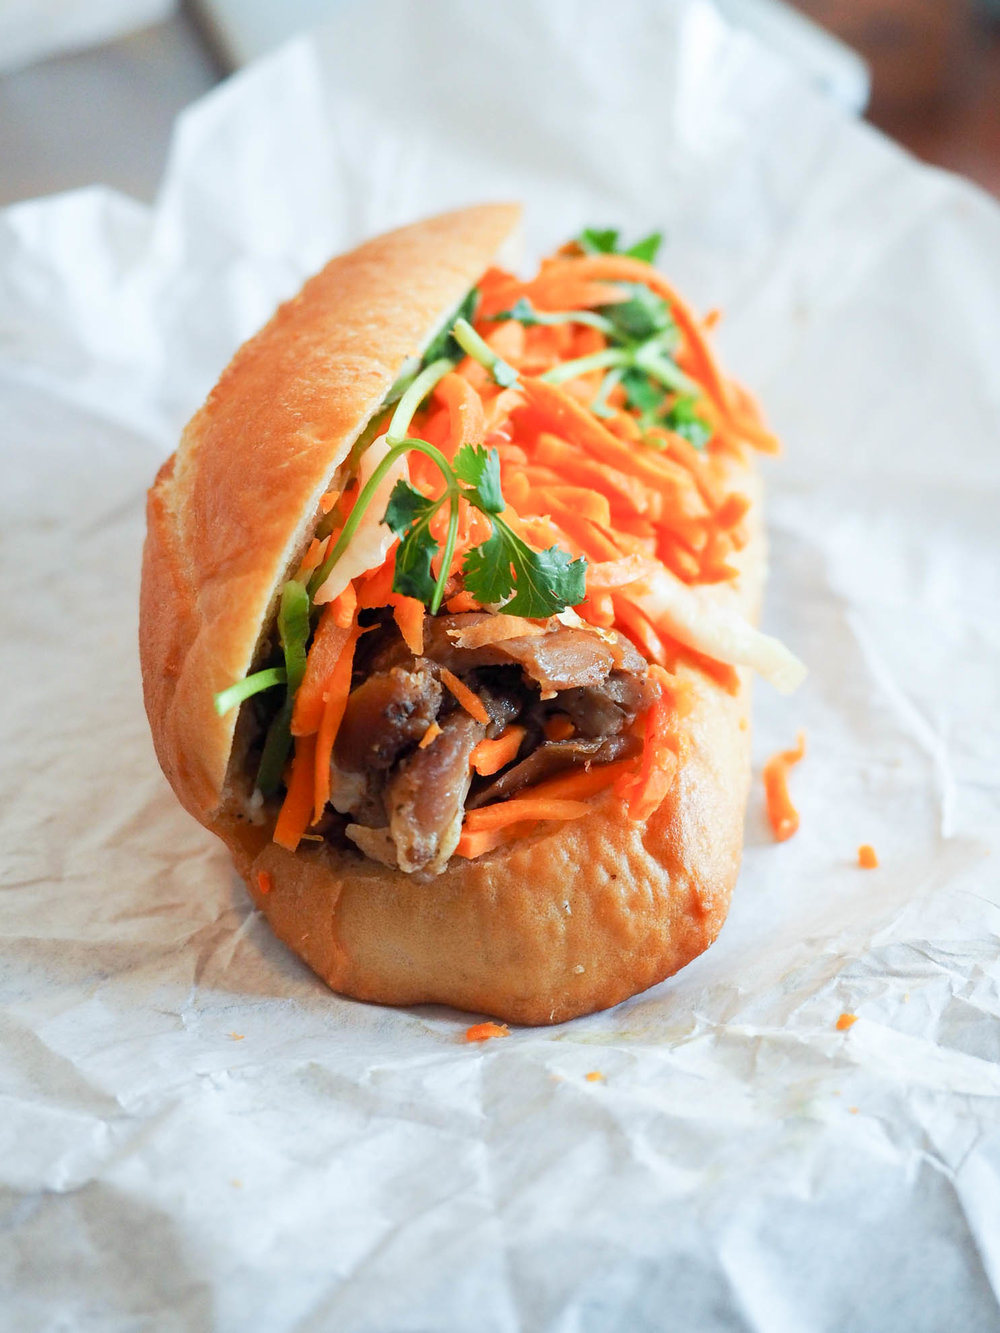 Banh Mi at Saigon Sandwich in the Tenderloin